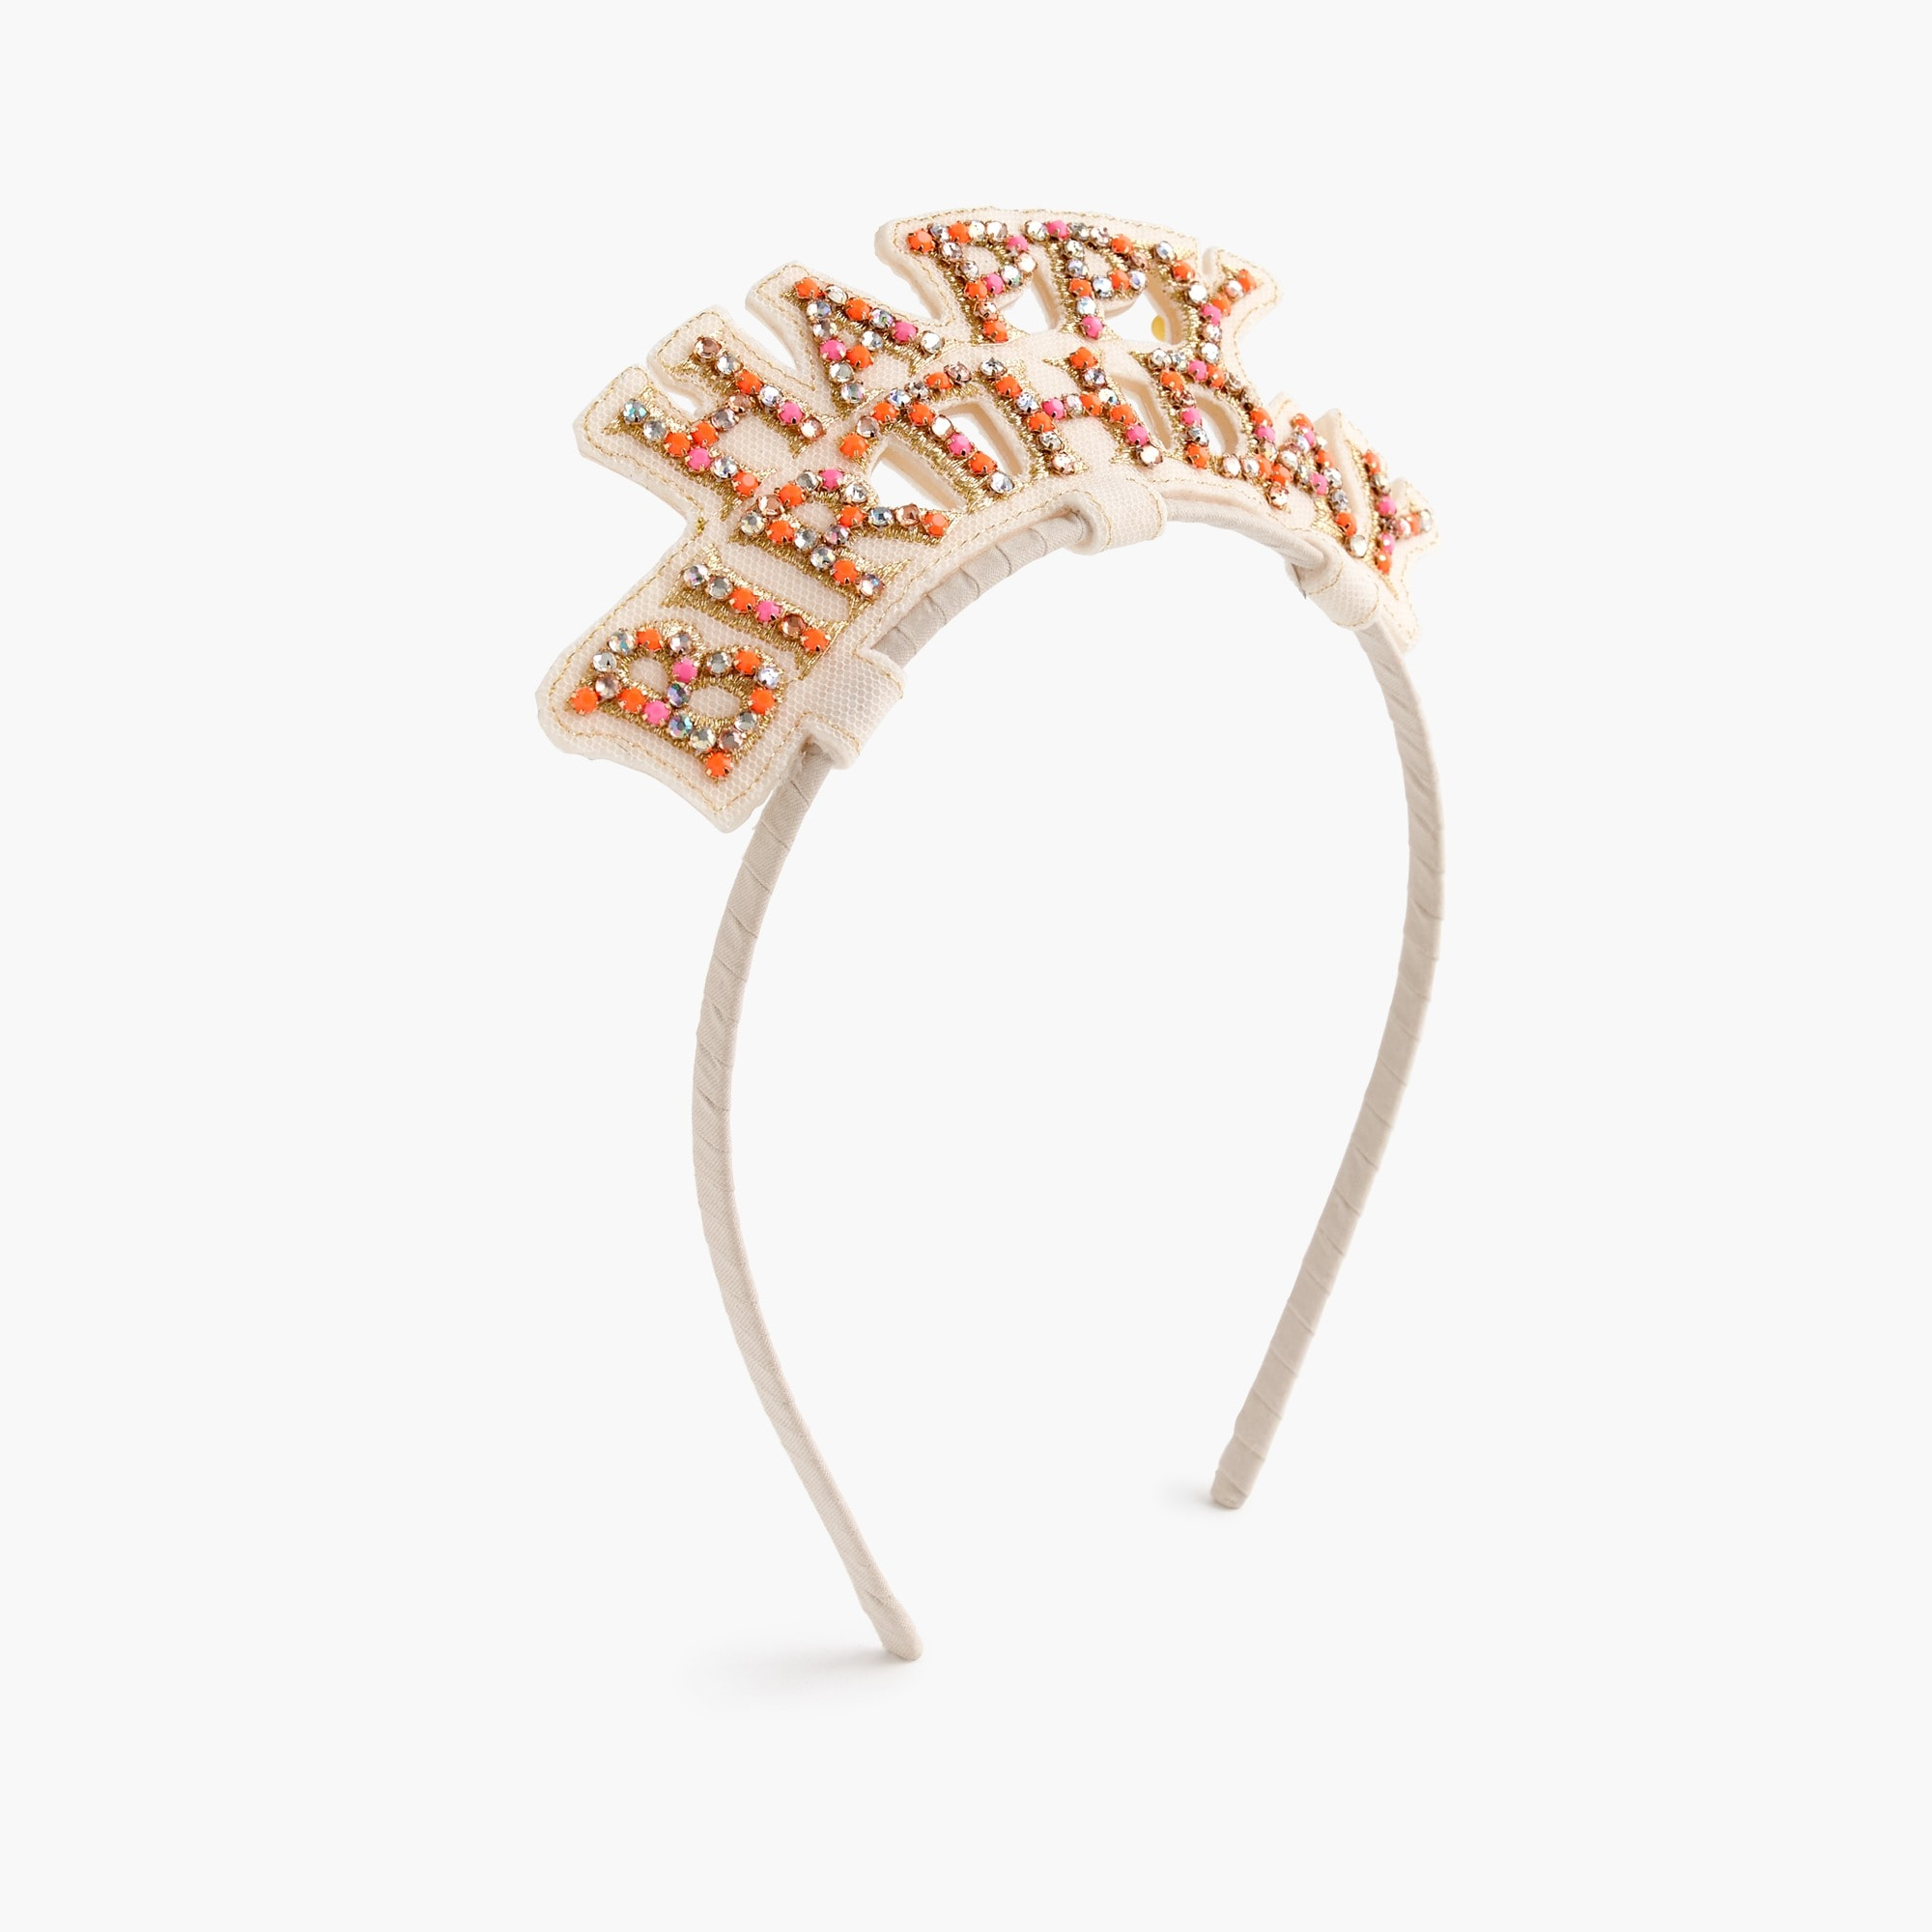 Girls' happy birthday headband girl jewelry & accessories c